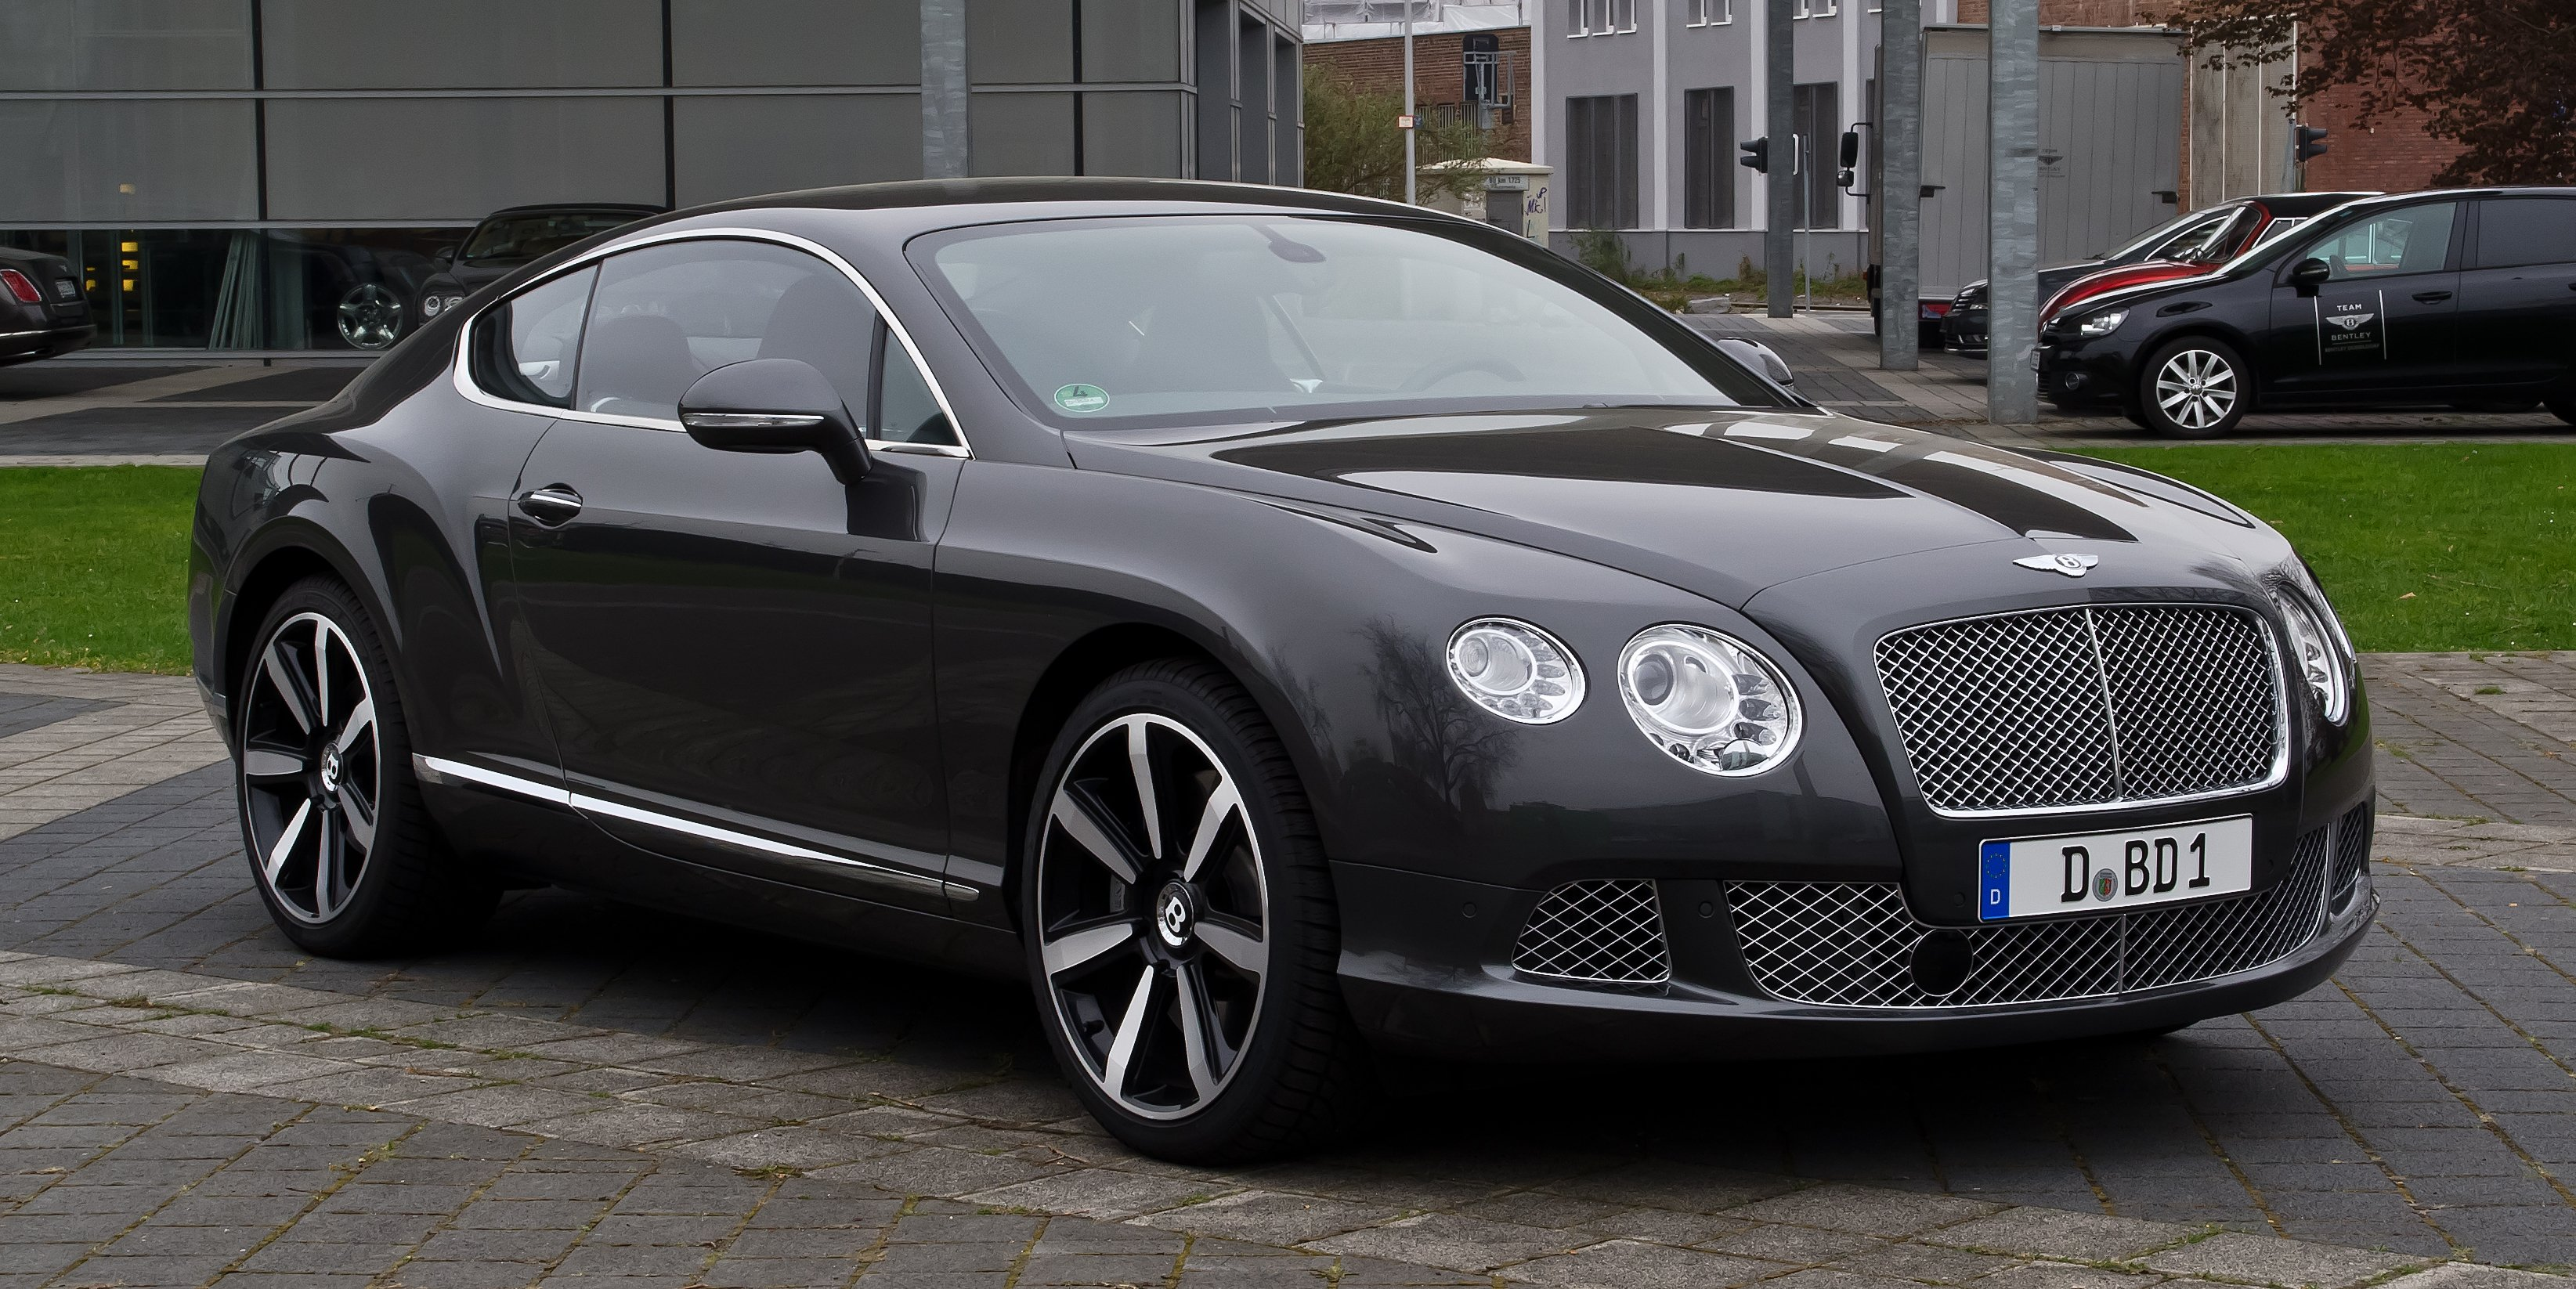 Who owns bentley motor cars